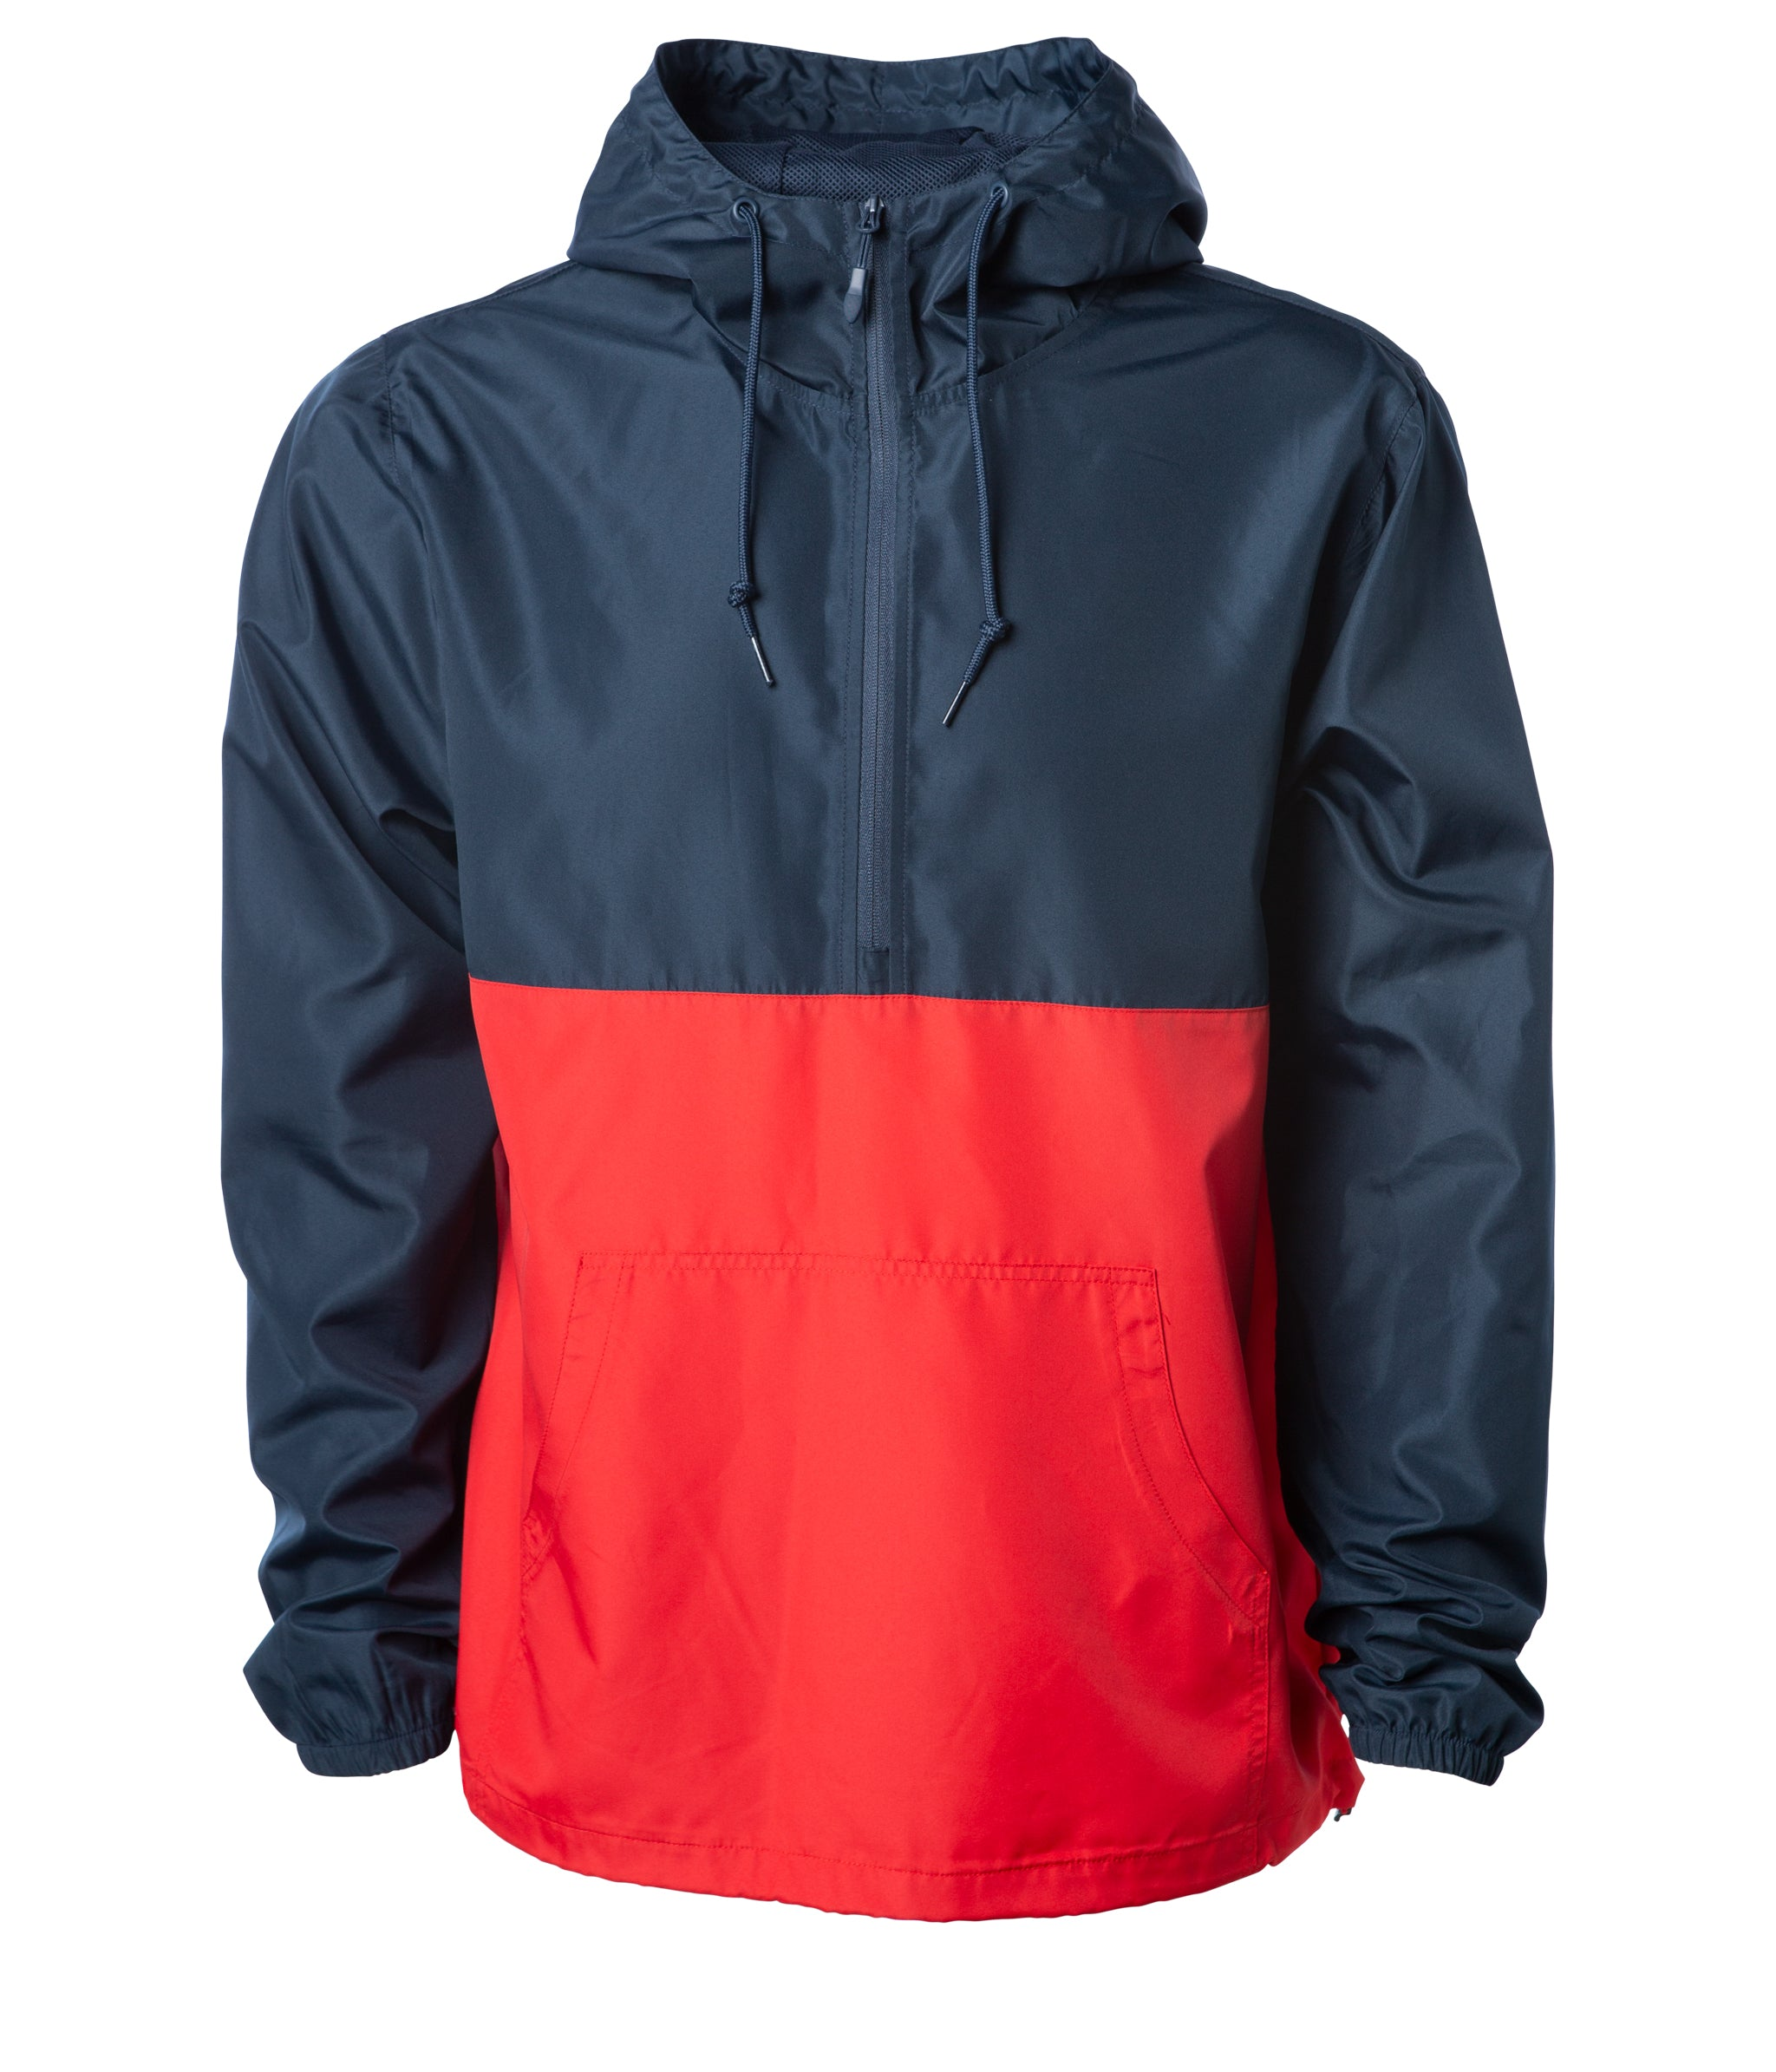 0fae3cf94 Pullover Windbreaker Anorak Jacket | Independent Trading Co ...